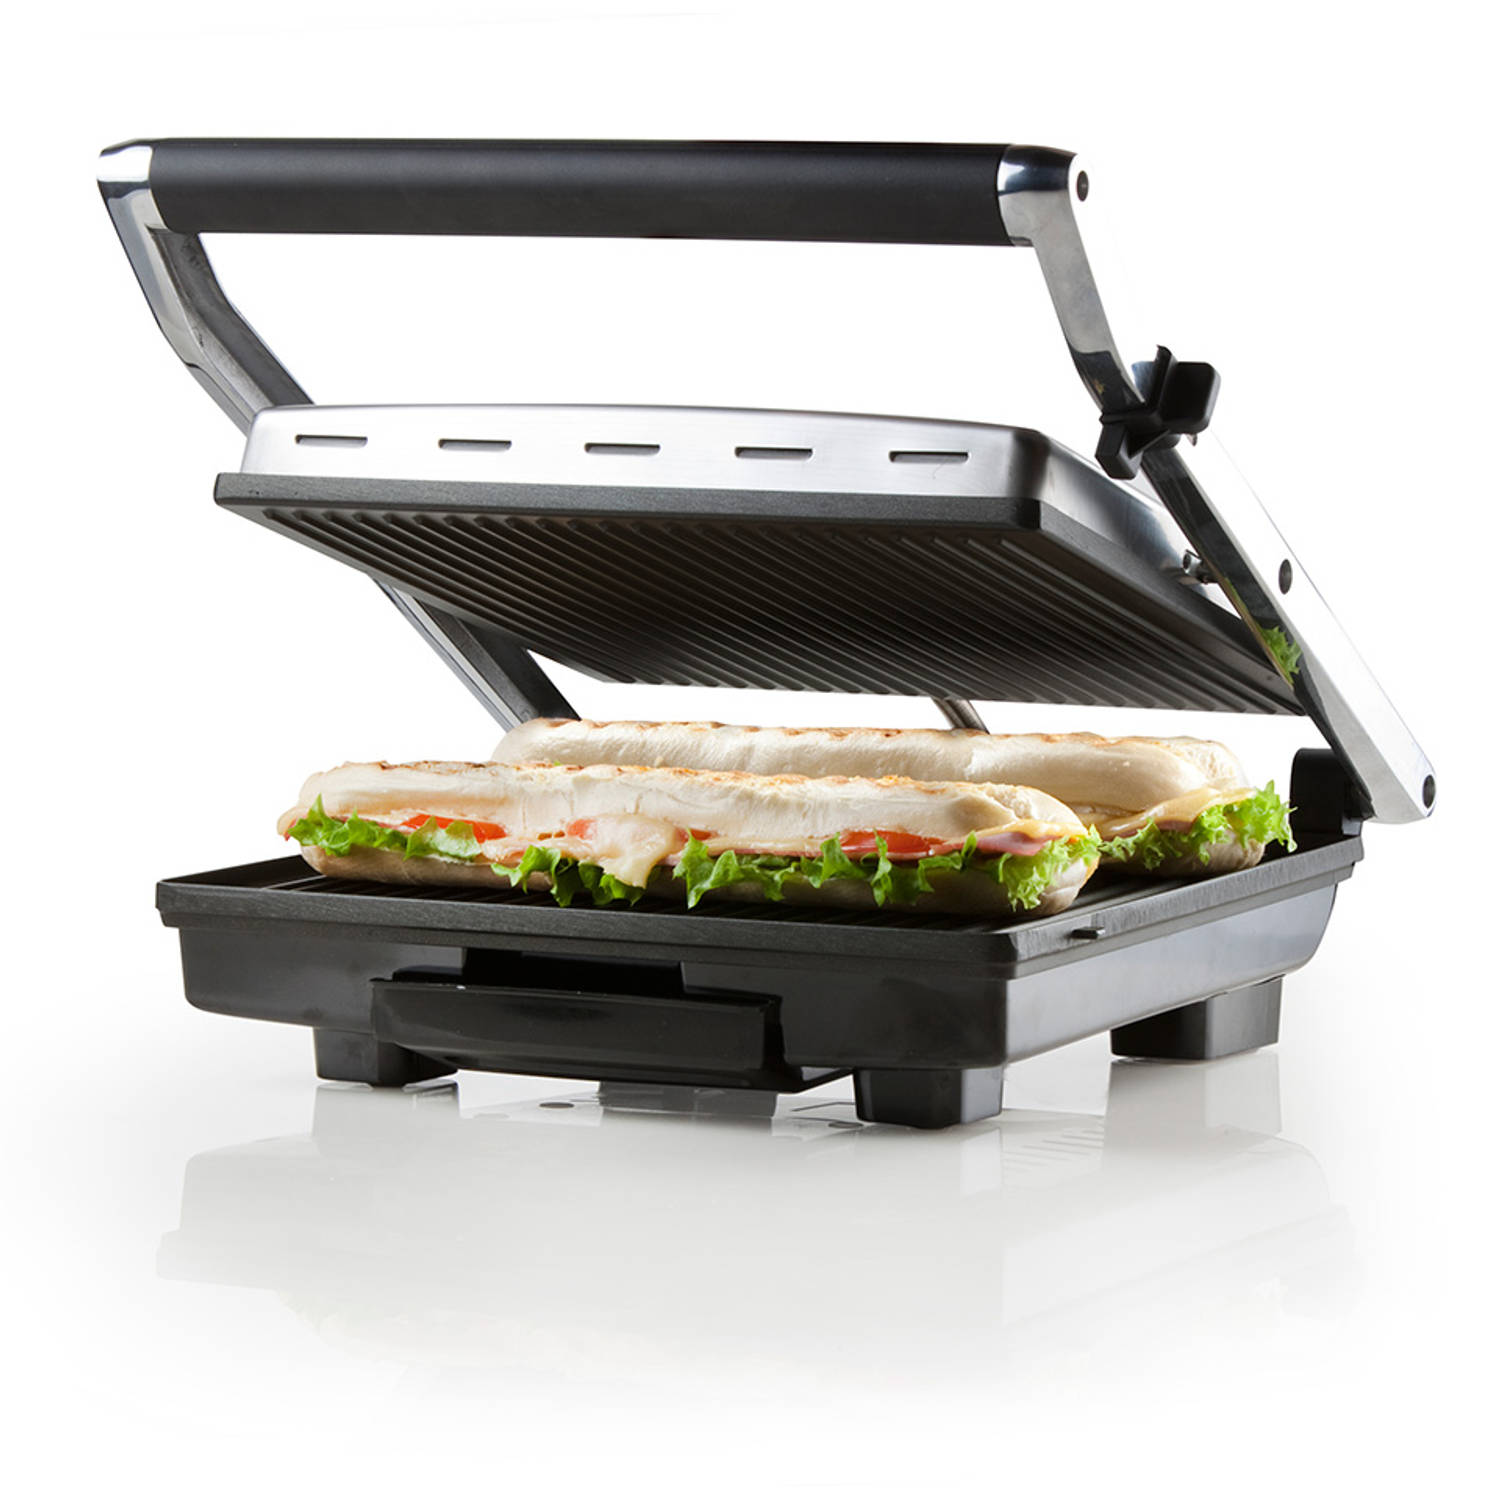 Korting Domo multigrill do9135g